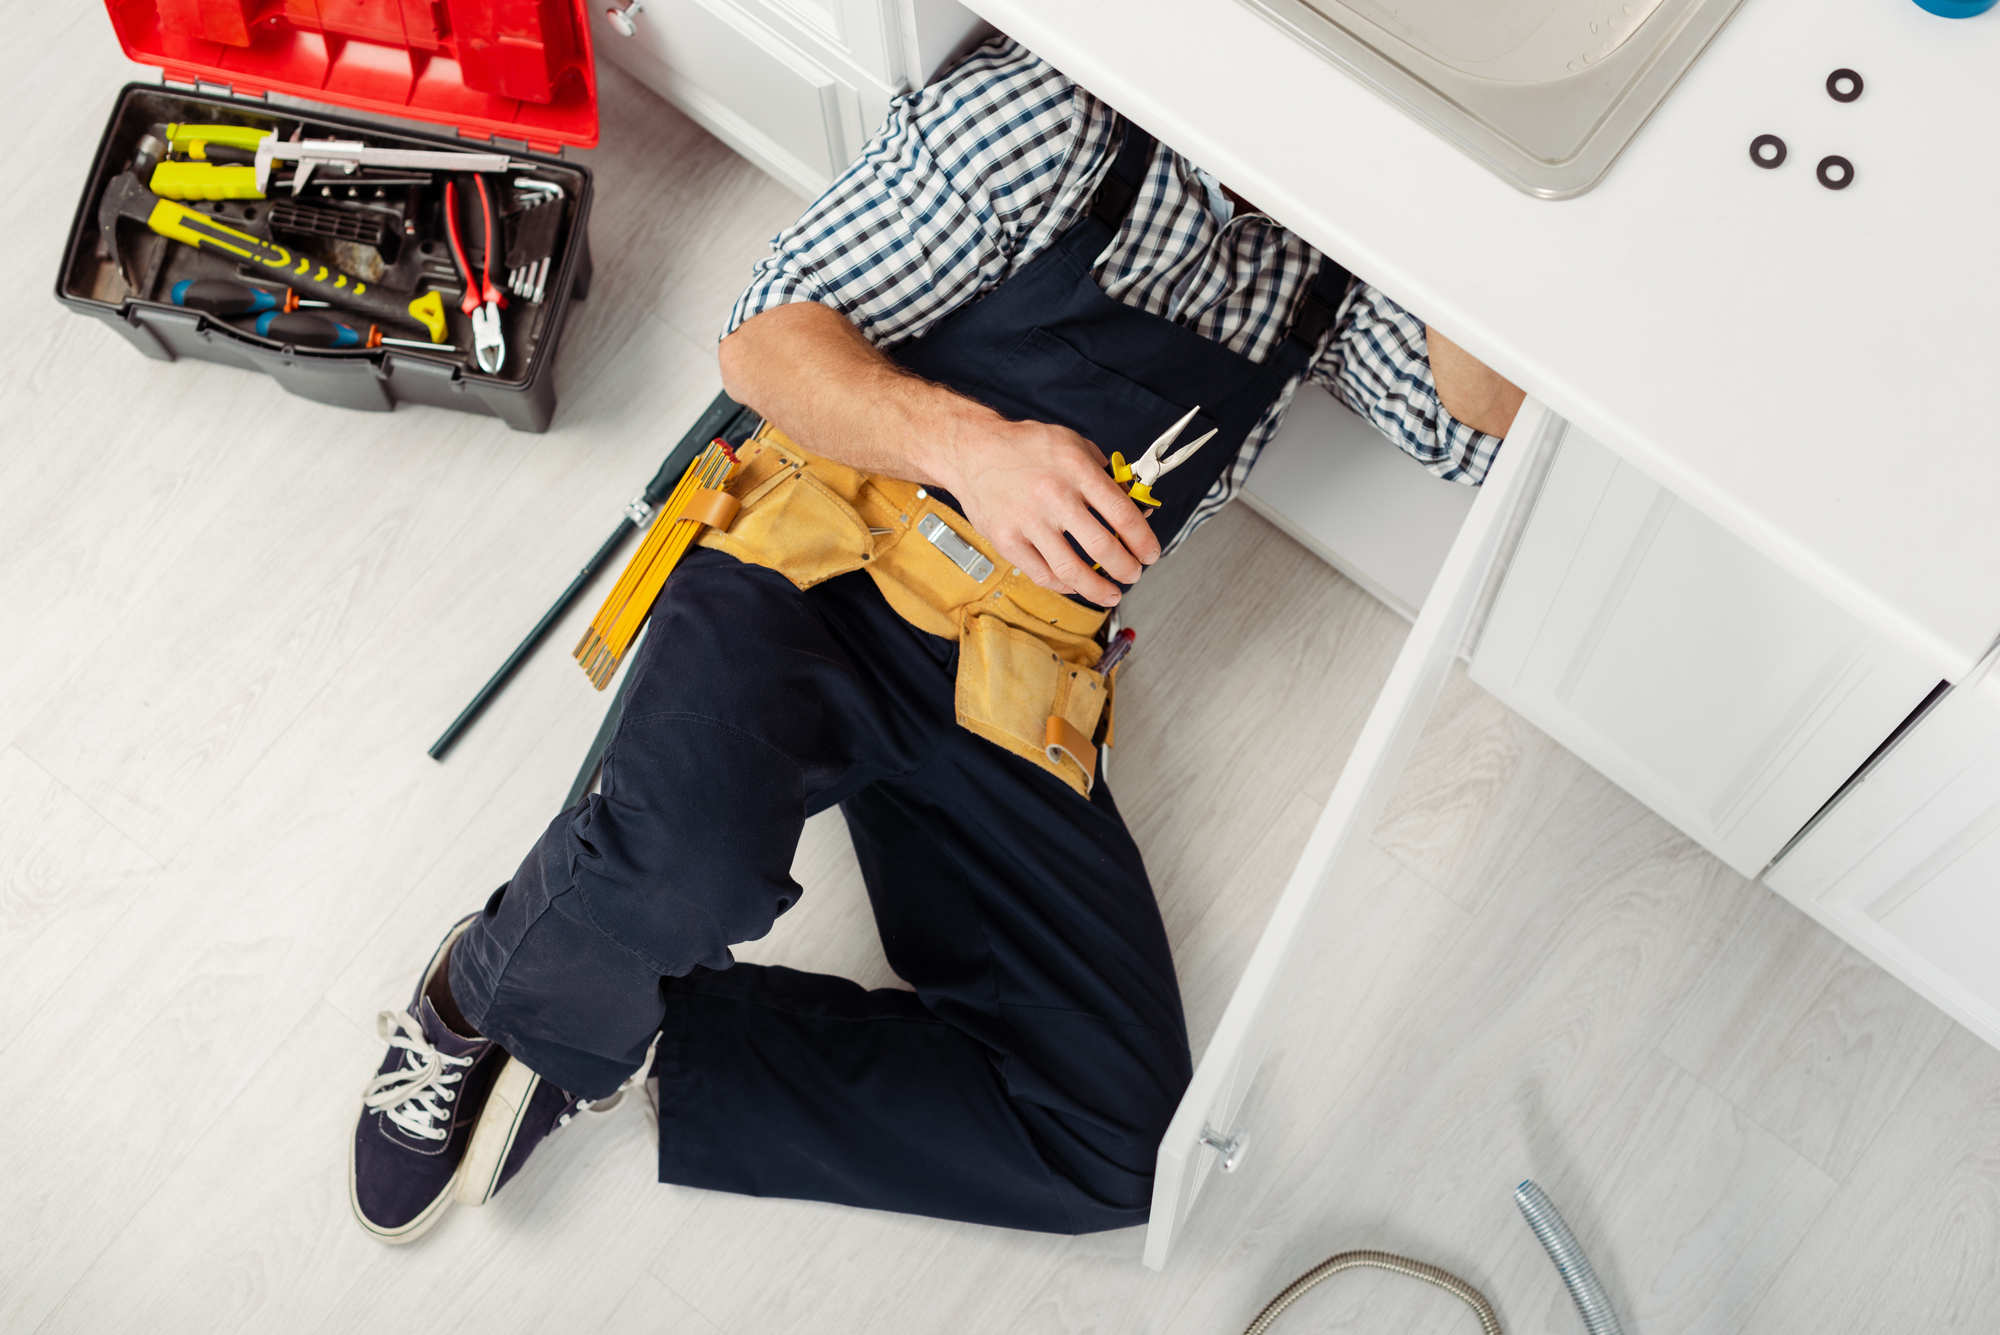 Top view of handyman in overalls and tool belt holding pliers while repairing sink in kitchen